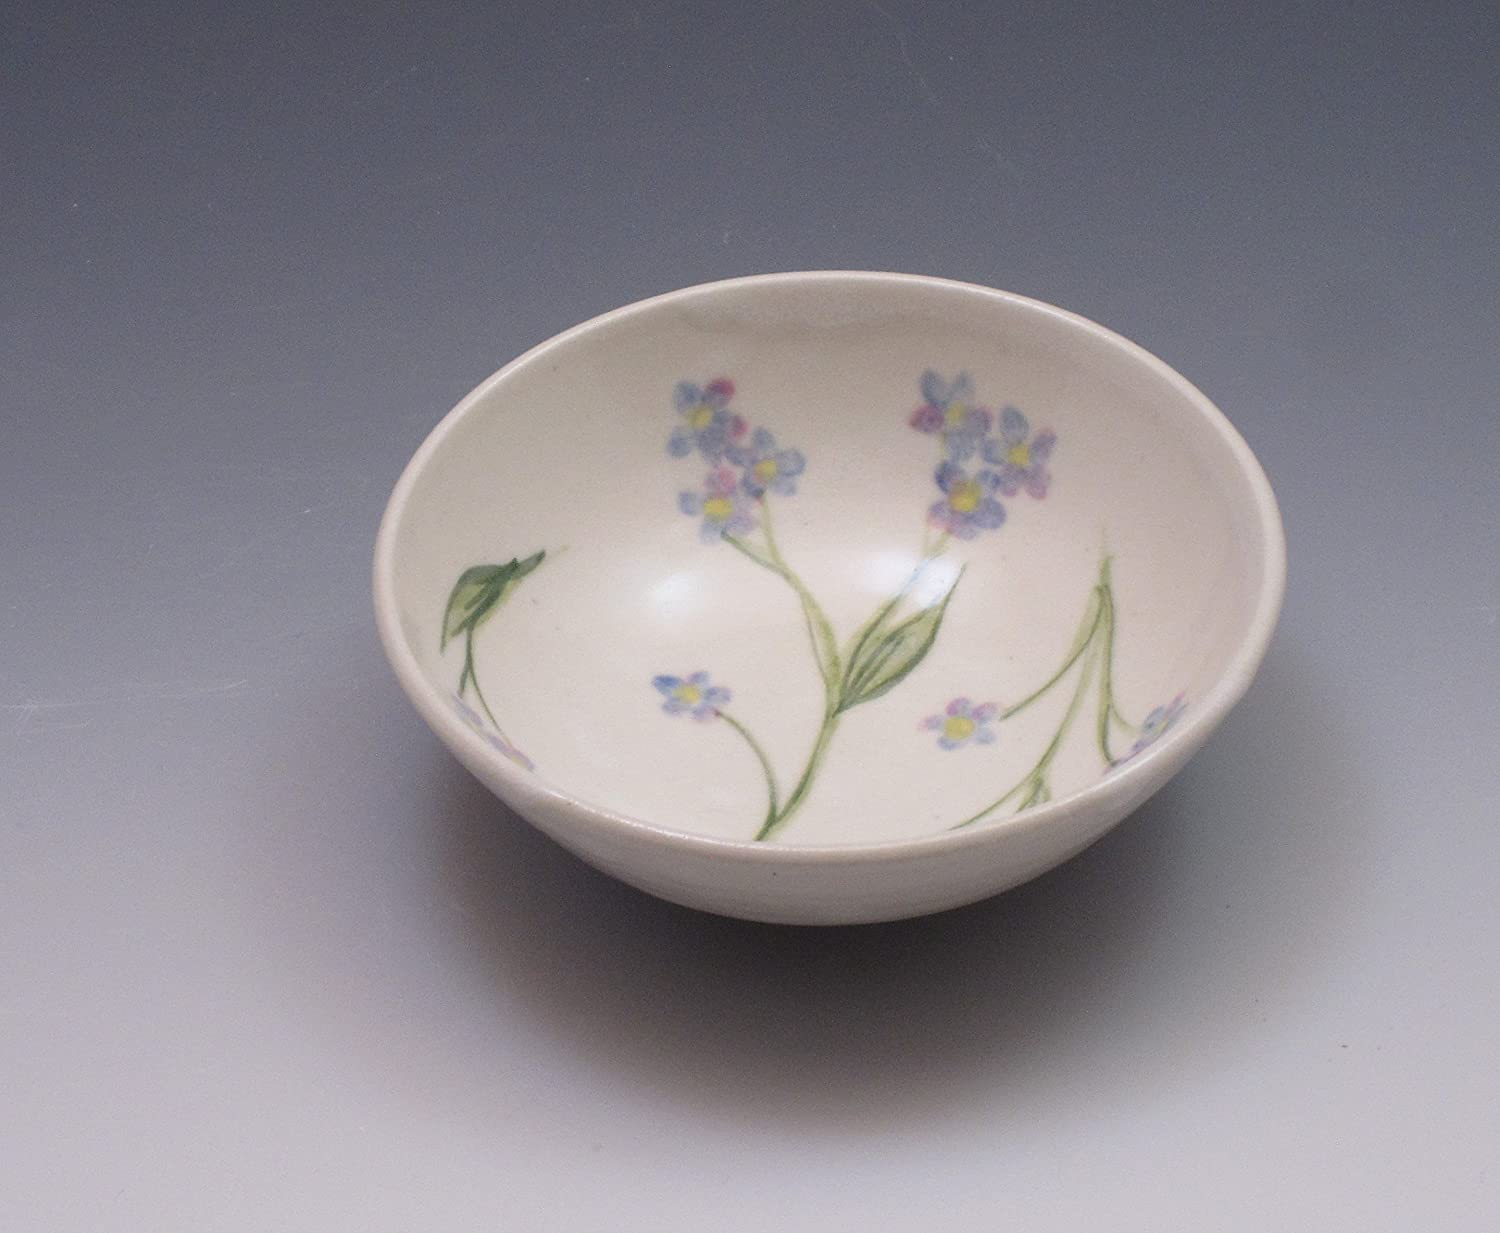 Small porcelain bowl, hand thrown and hand painted with forget-me-not flowers